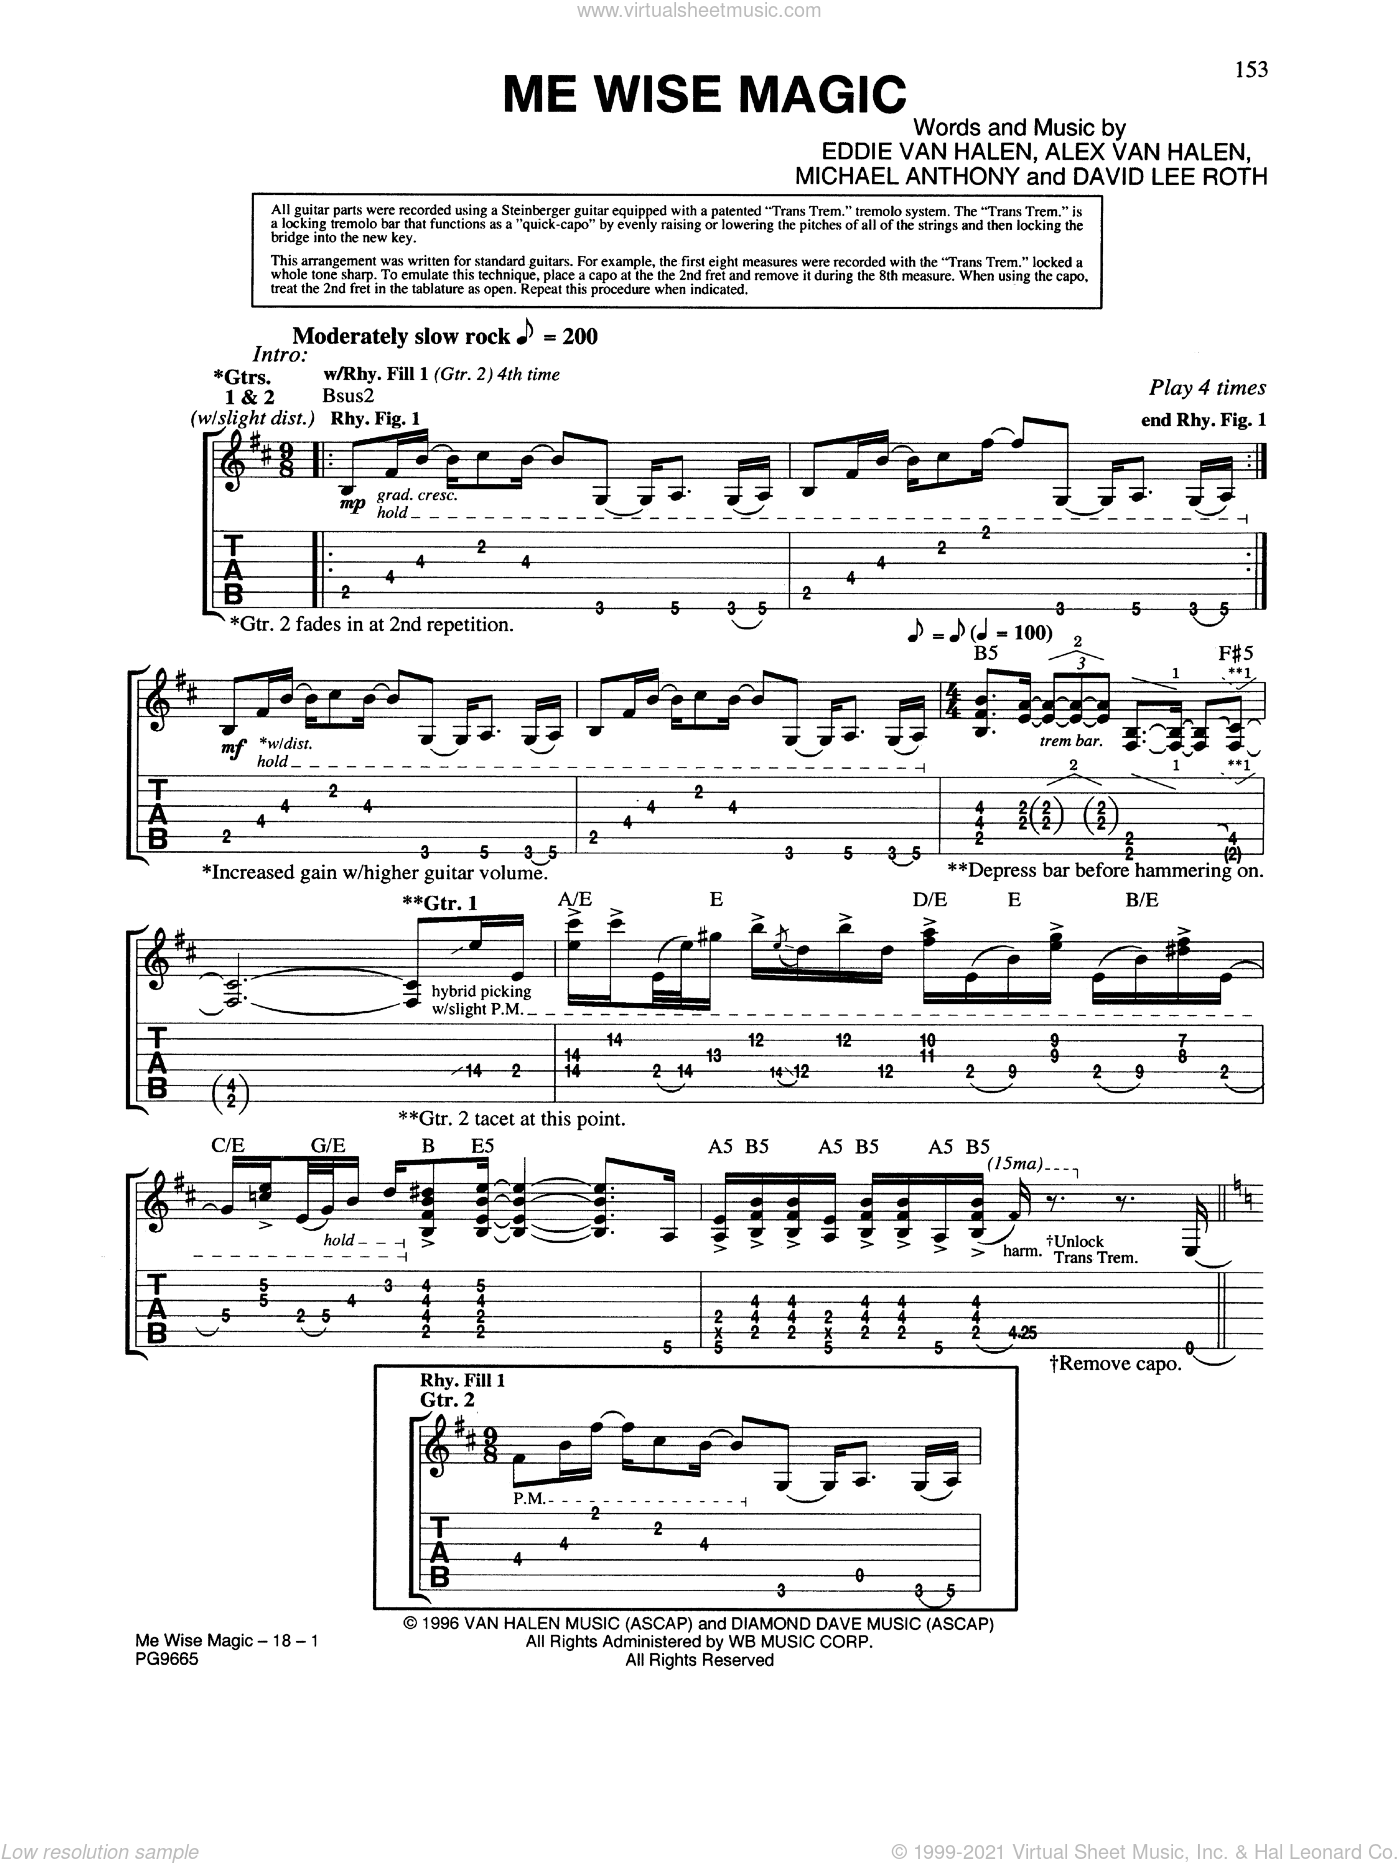 Me Wise Magic sheet music for guitar (tablature) by Michael Anthony